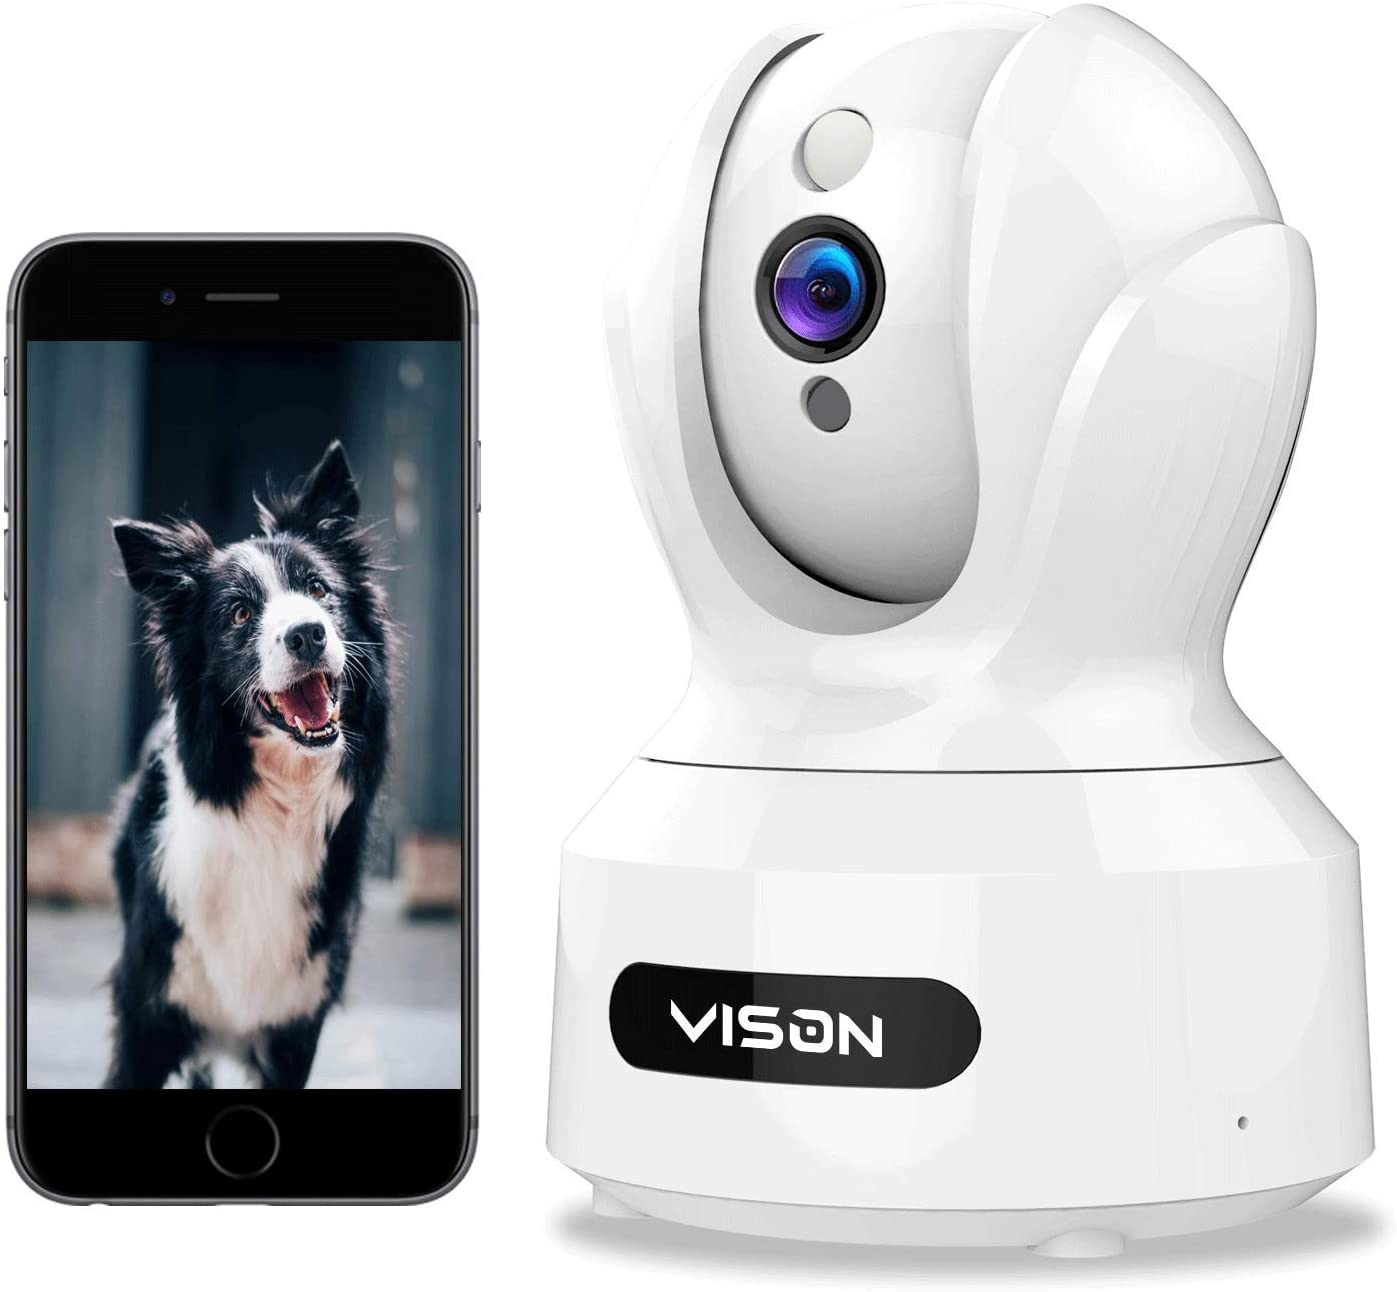 VISON Baby Monitor, WiFi pet Camera, FHD1080P Dog Camera, Wireless IP Camera, Home Security Camera with Alexa , Motion and Sound Detection, Motion Tracking, Two-Way Audio